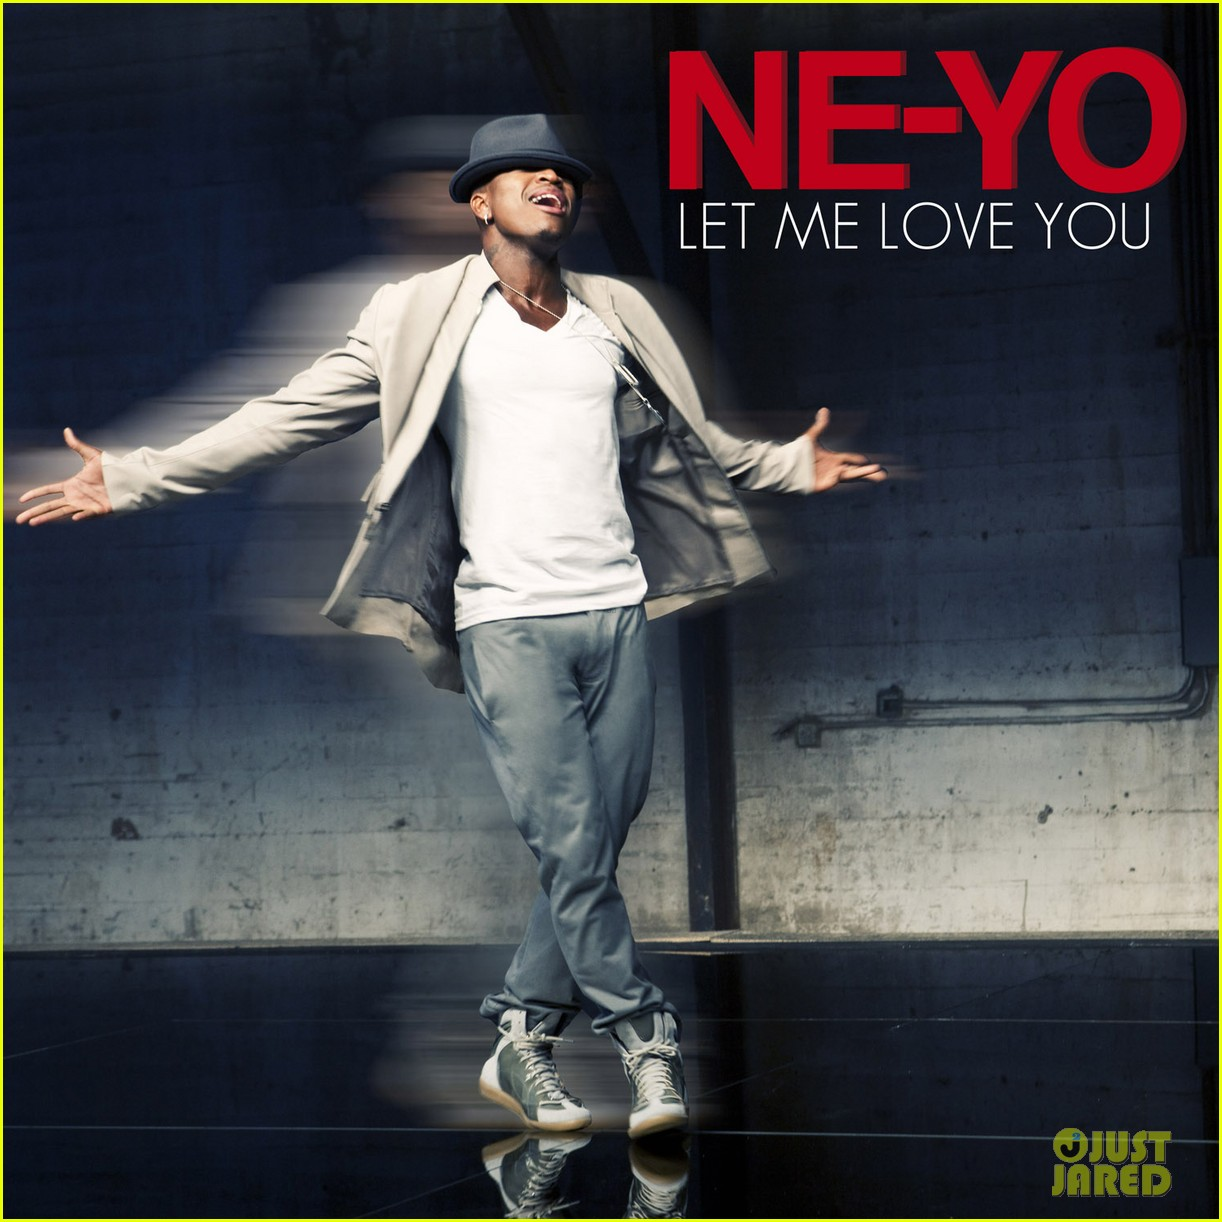 neyo jj music monday 02.2685142